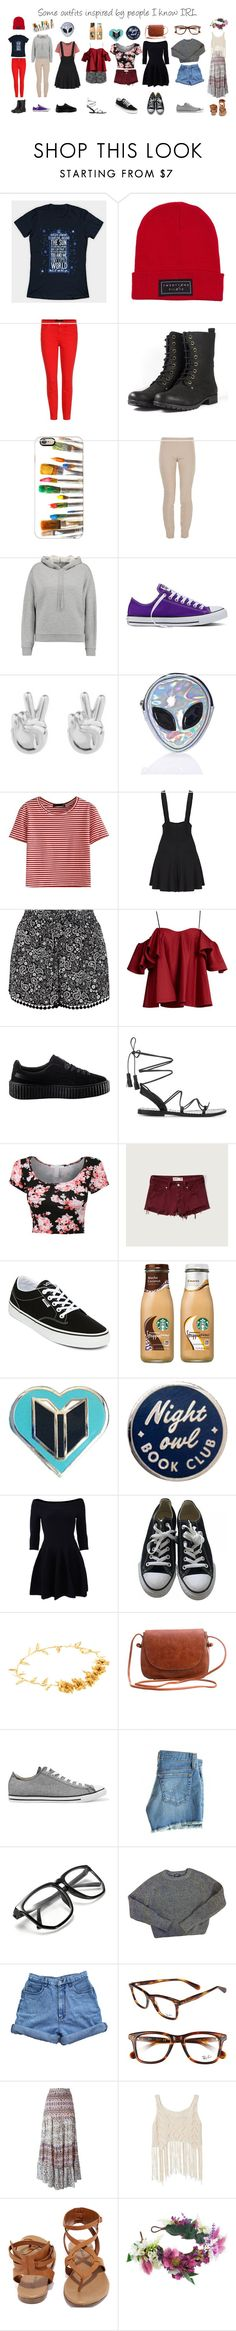 """""""0300"""" by doglover43 ❤ liked on Polyvore featuring J Brand, Casetify, The Row, T By Alexander Wang, Converse, Rock 'N Rose, Disturbia, WithChic, New Look and Anna October"""